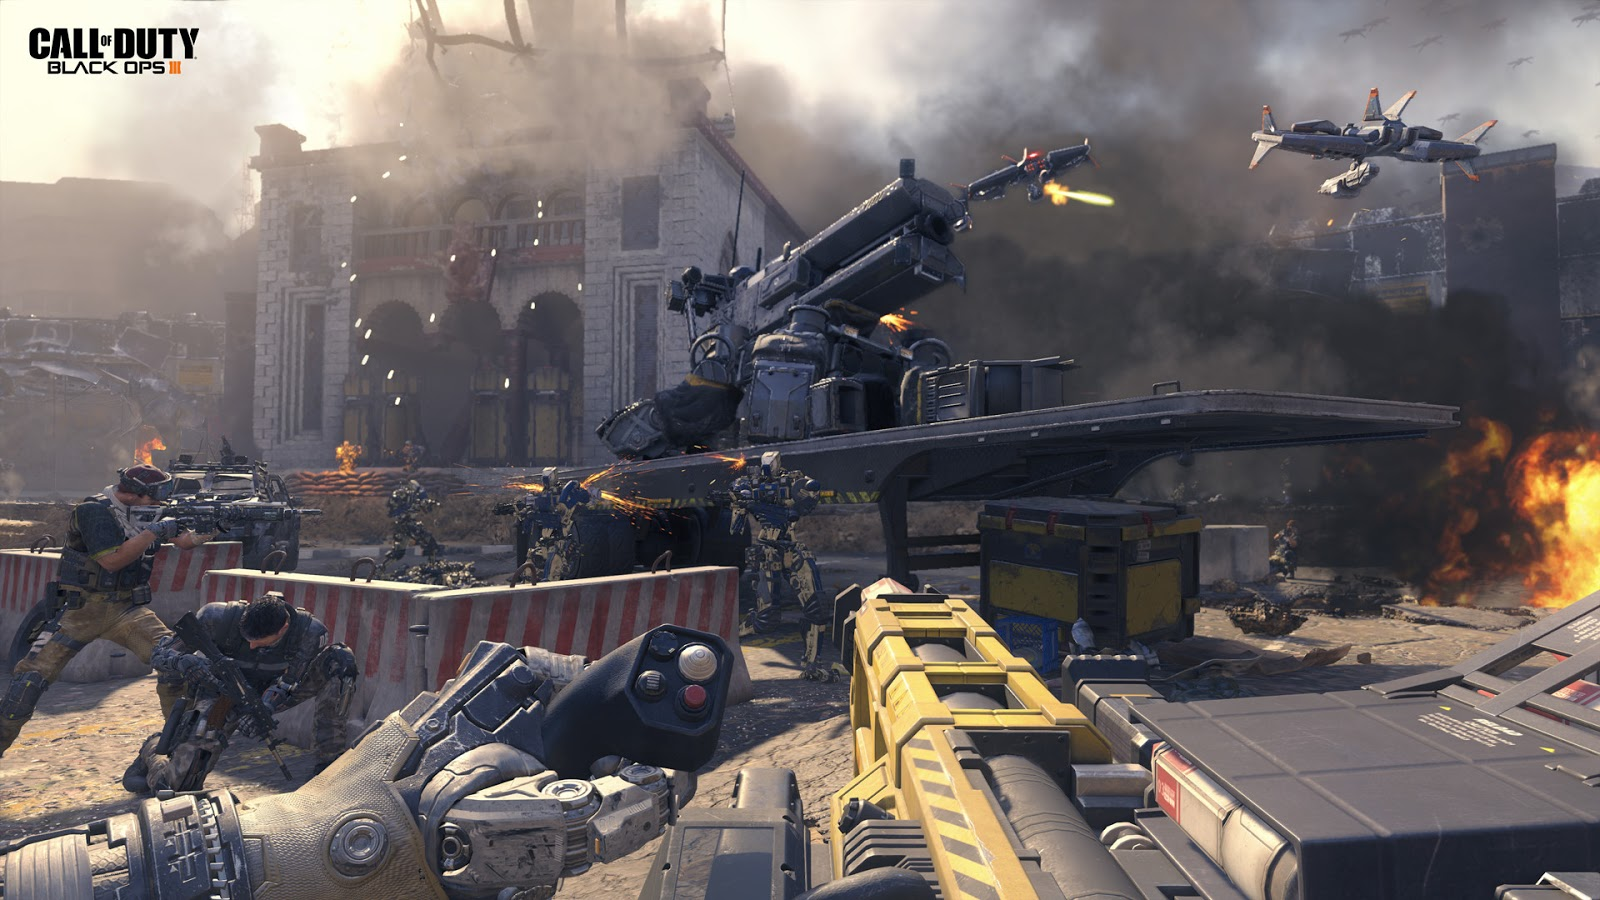 Call of Duty Black Ops 3 pc codex Reloaded game google